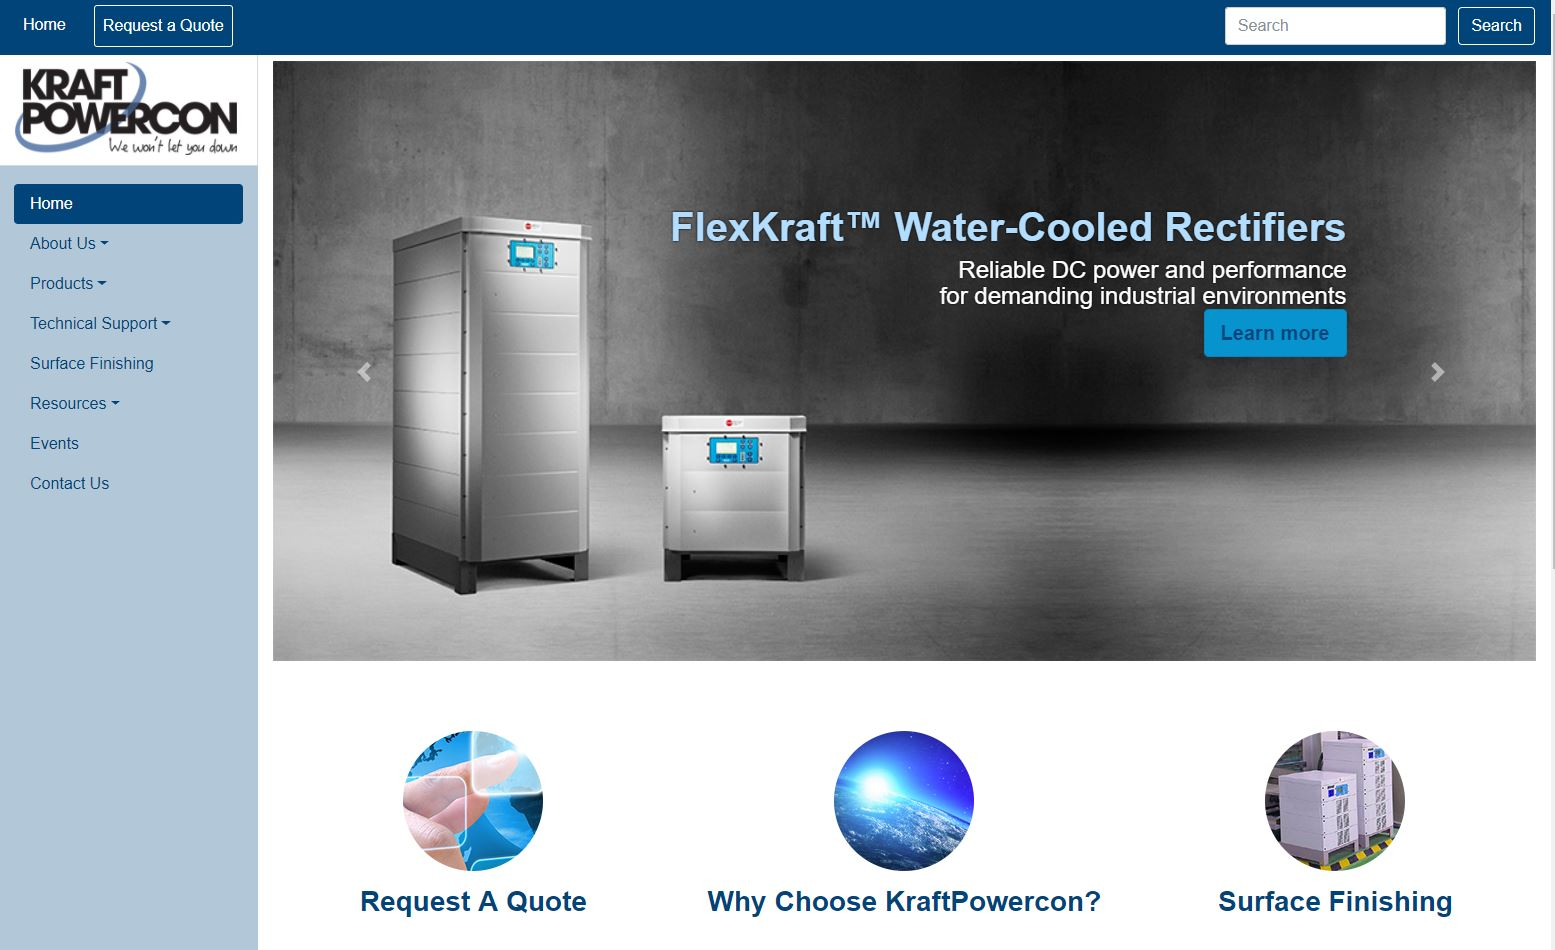 kraft website homepage.JPG